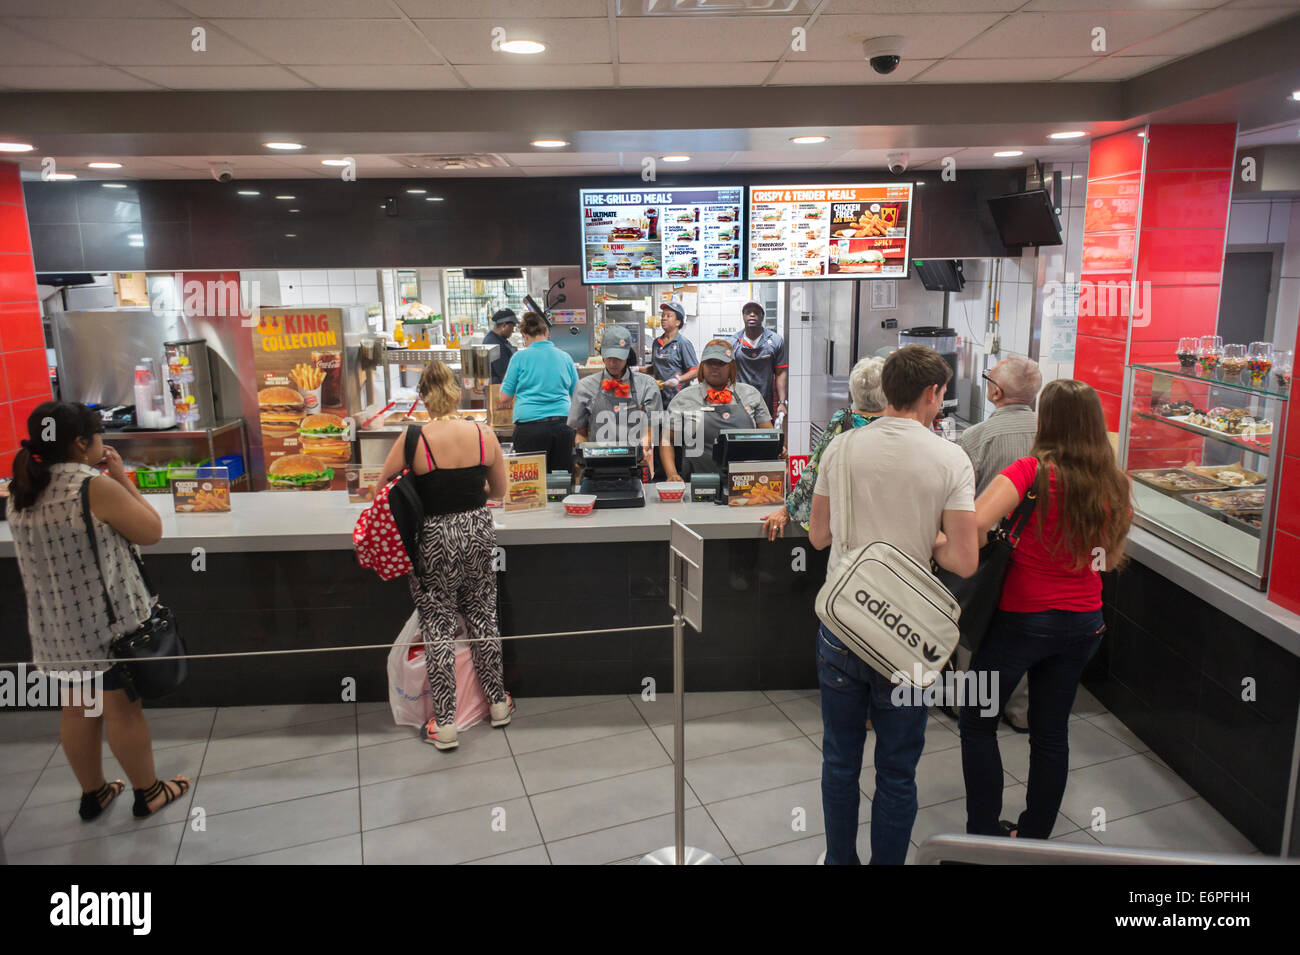 Burger king counter images galleries with a bite - Chow chow restaurante ...